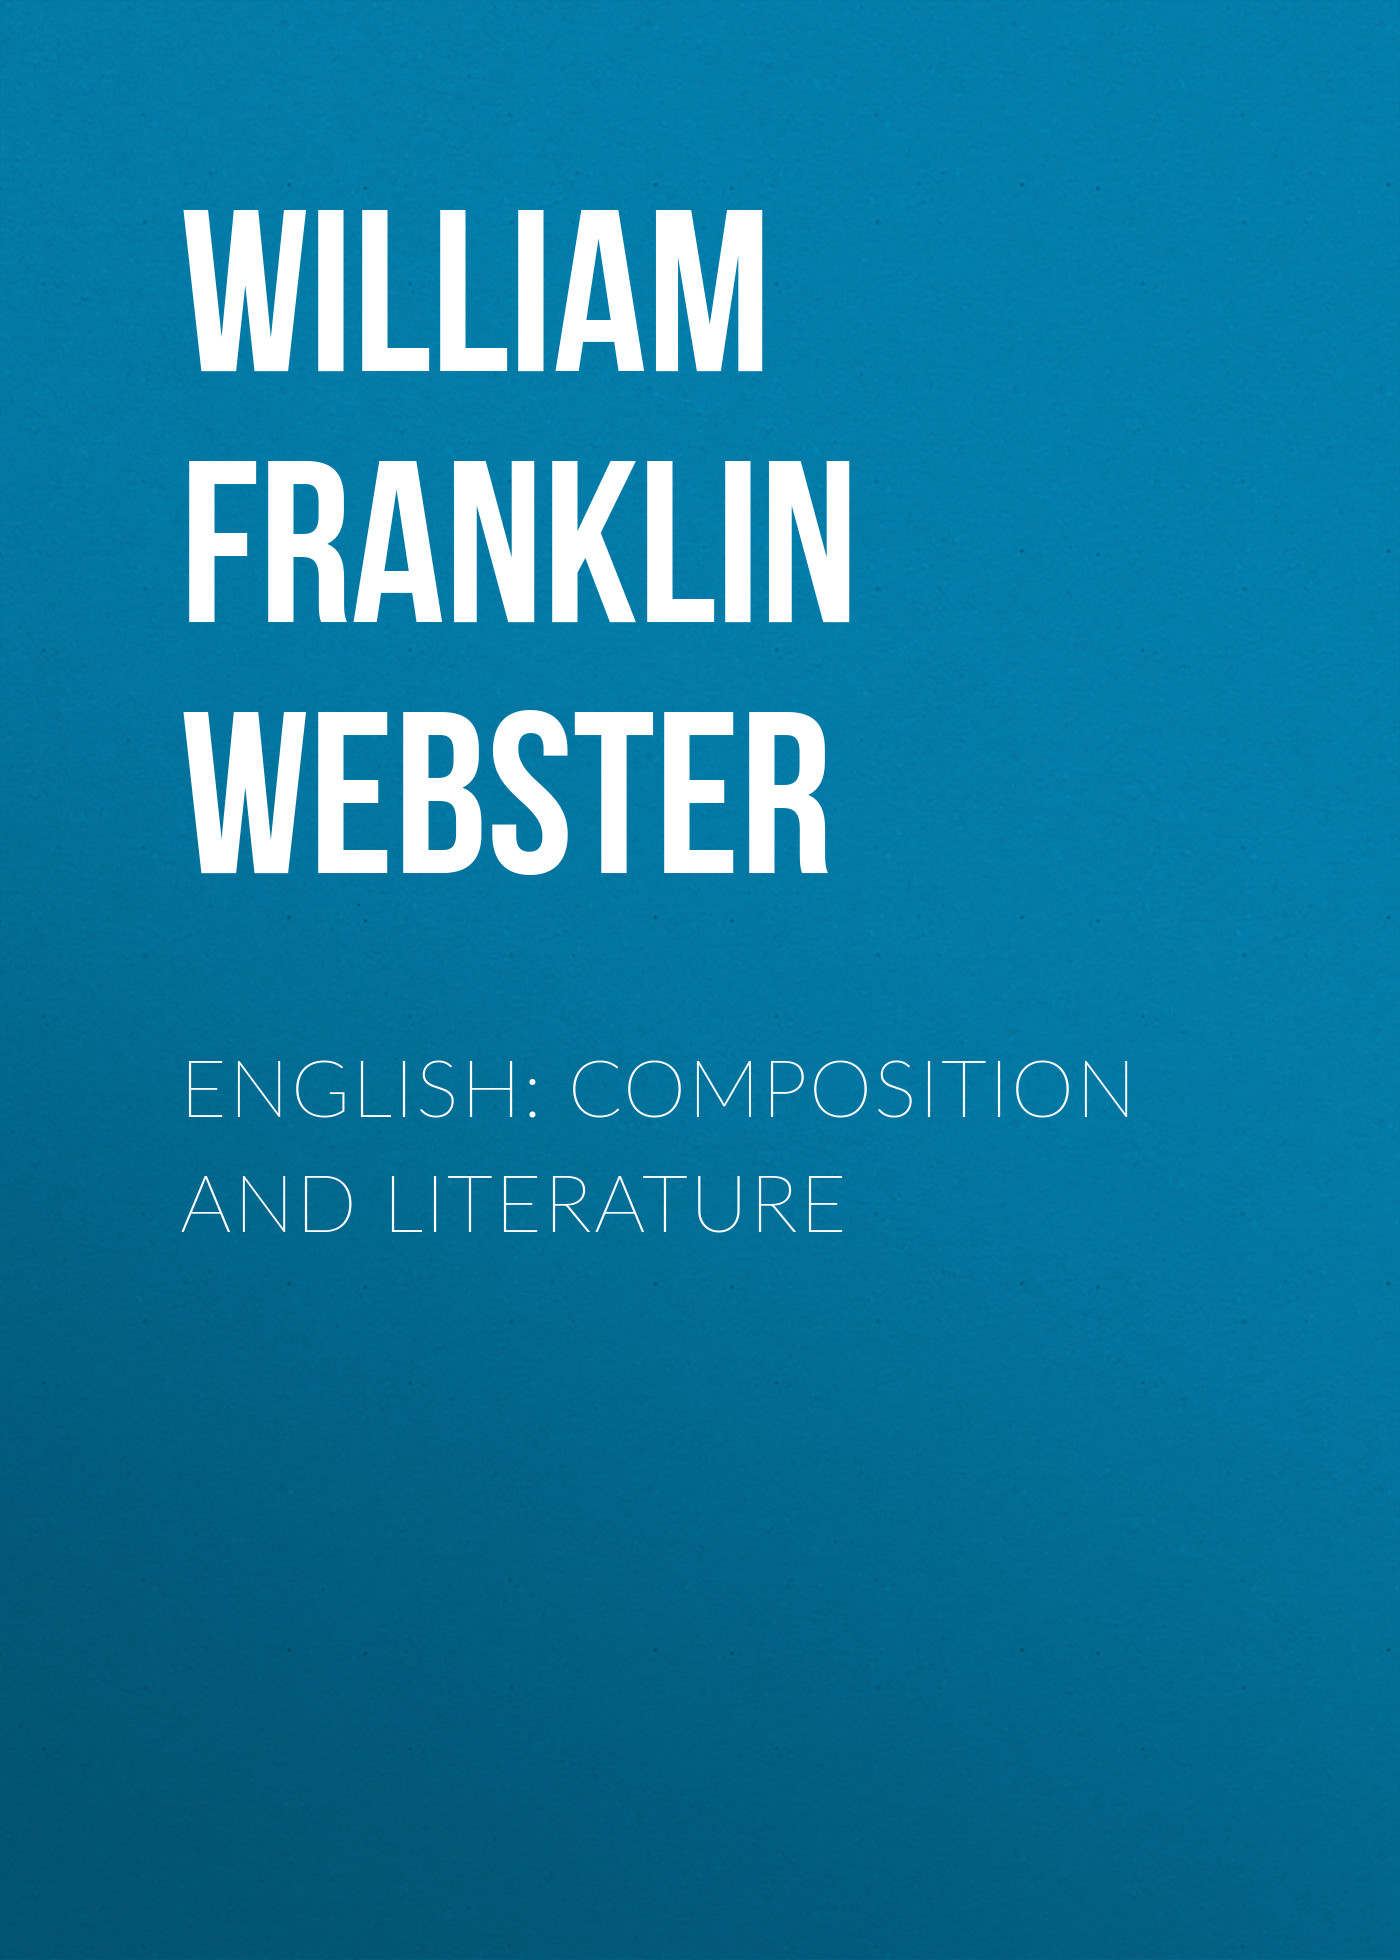 William Franklin Webster English: Composition and Literature